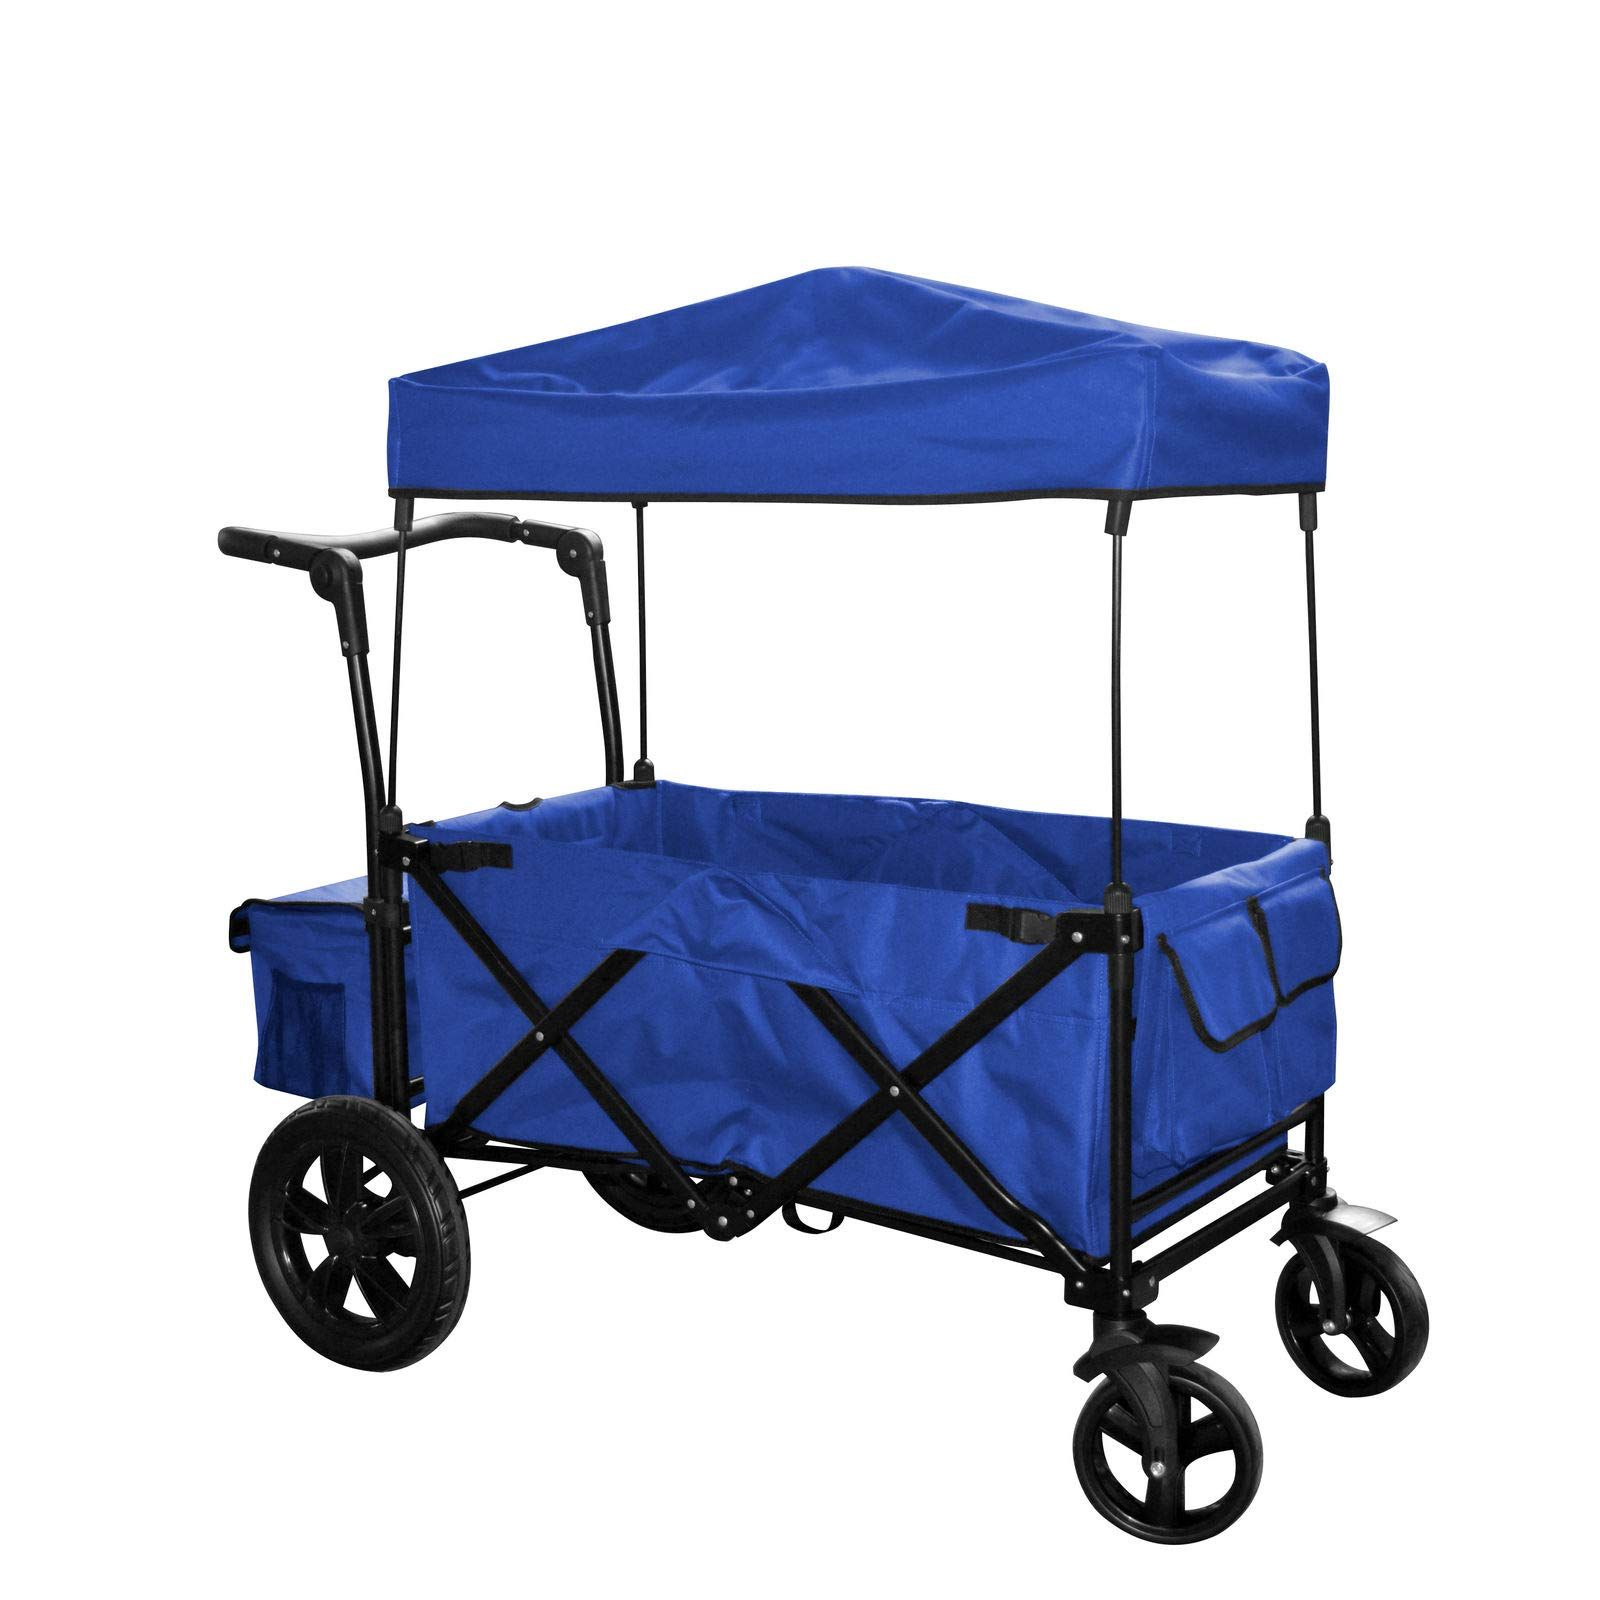 Asher Amada Blue Outdoor Folding Push Wagon Canopy Garden